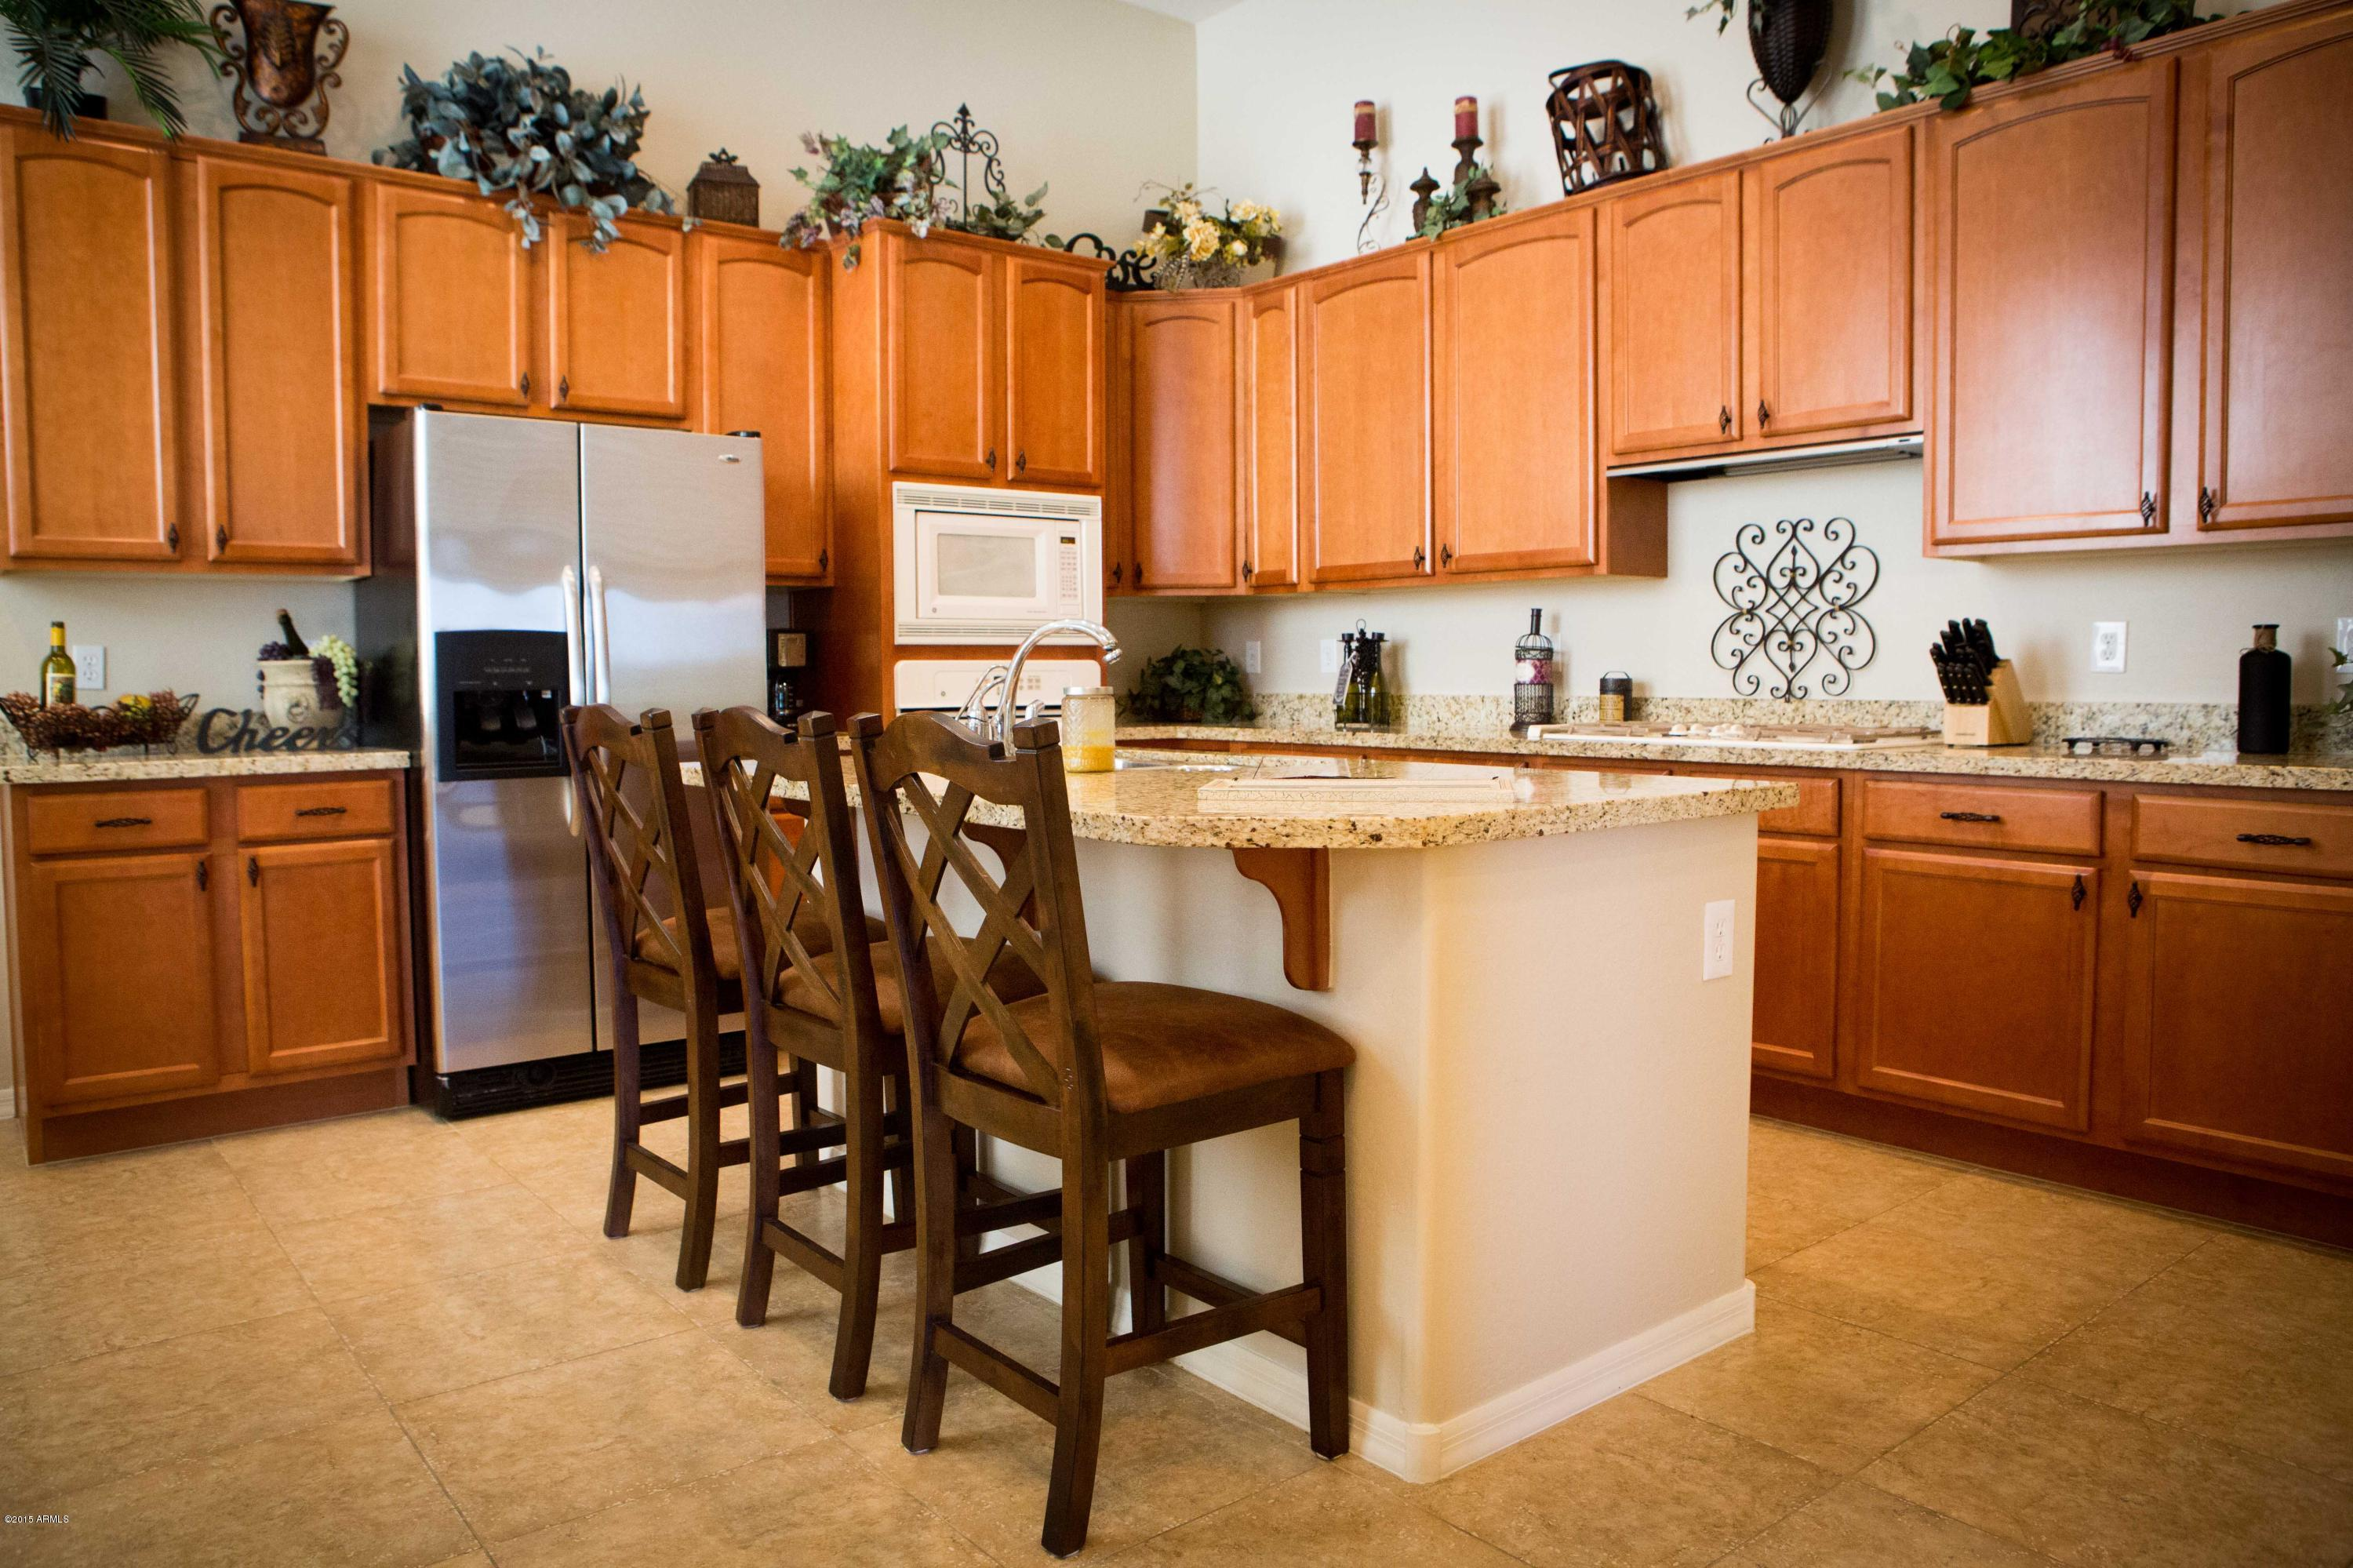 2430 N 142ND Drive, Goodyear, AZ 85395, 2 Bedrooms Bedrooms, ,Residential Lease,For Rent,2430 N 142ND Drive,5973077